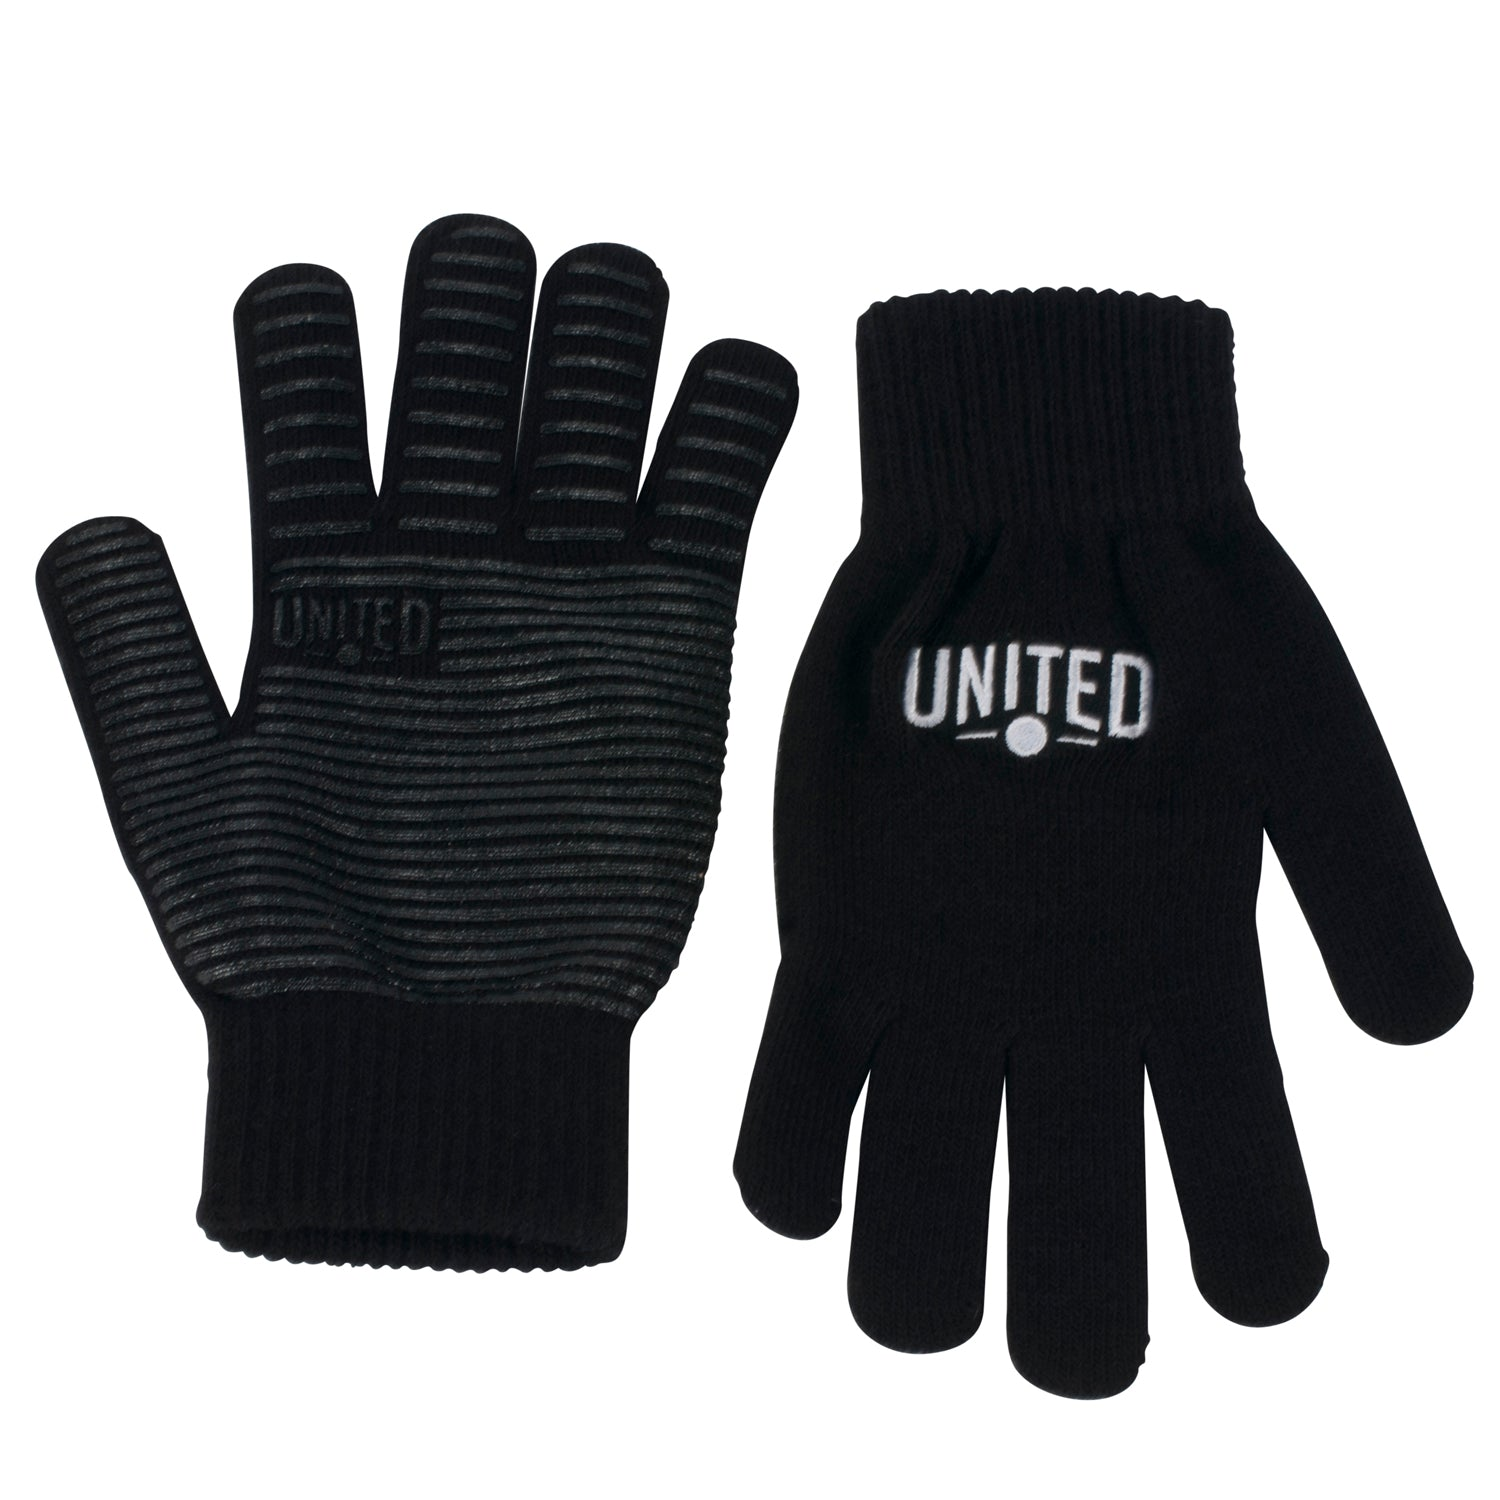 United Signature Knitted grip Glove